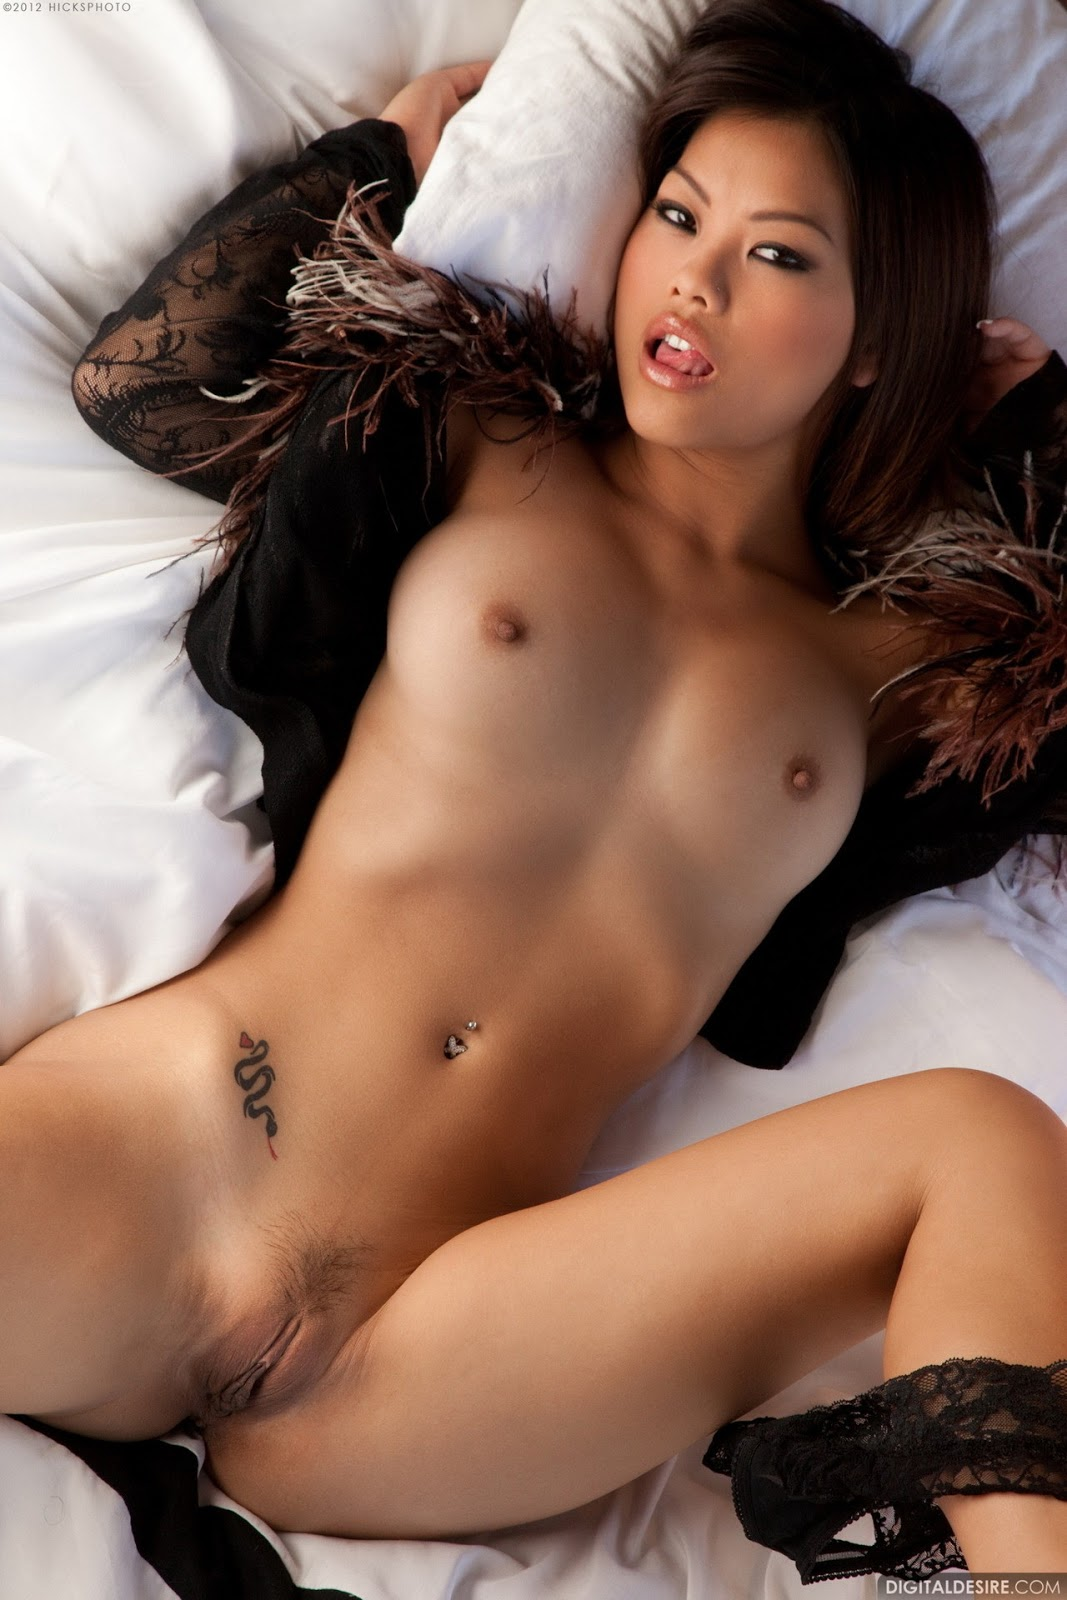 Asian sexy girl image naked